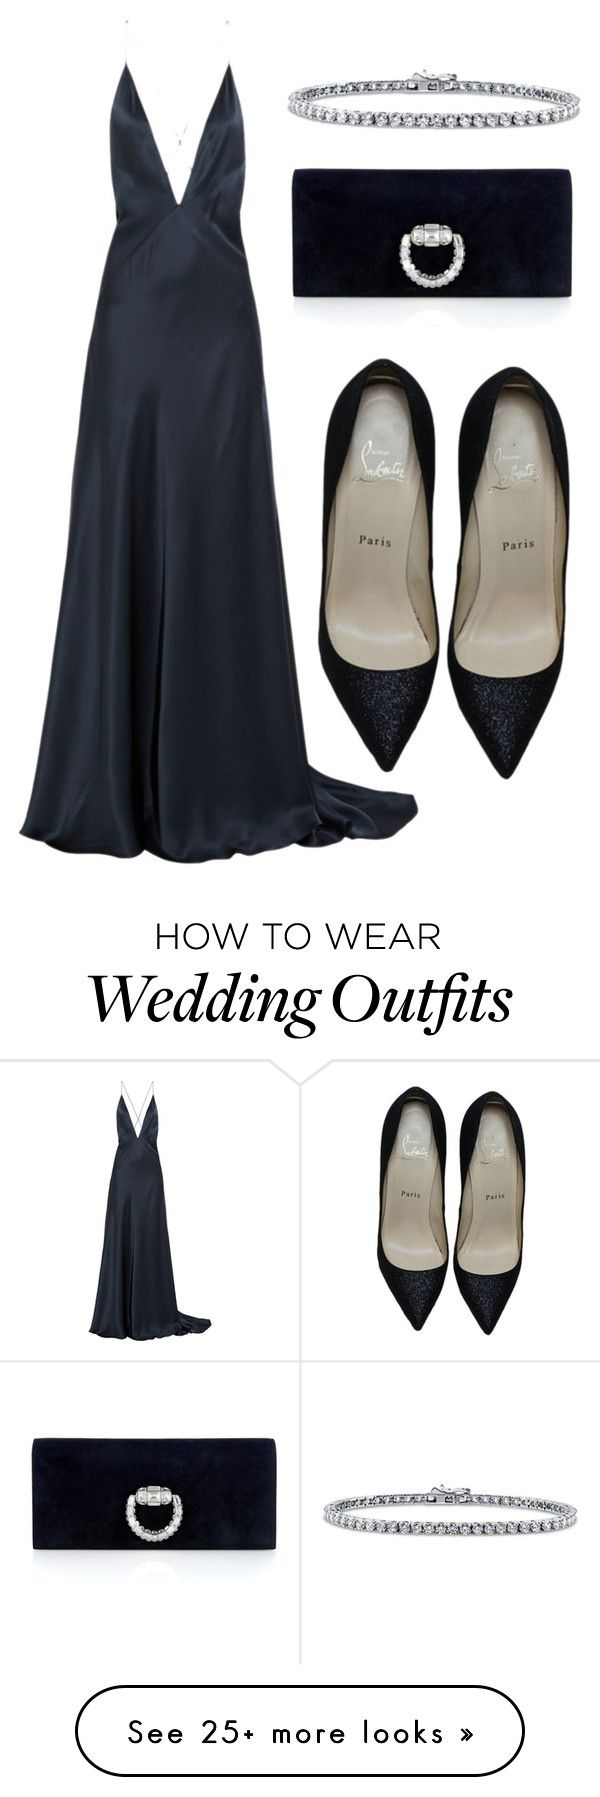 """Black tie wedding guest"" by style-embassy on Polyvore featuring Michael Lo Sordo, Christian Louboutin, Gucci and BERRICLE"